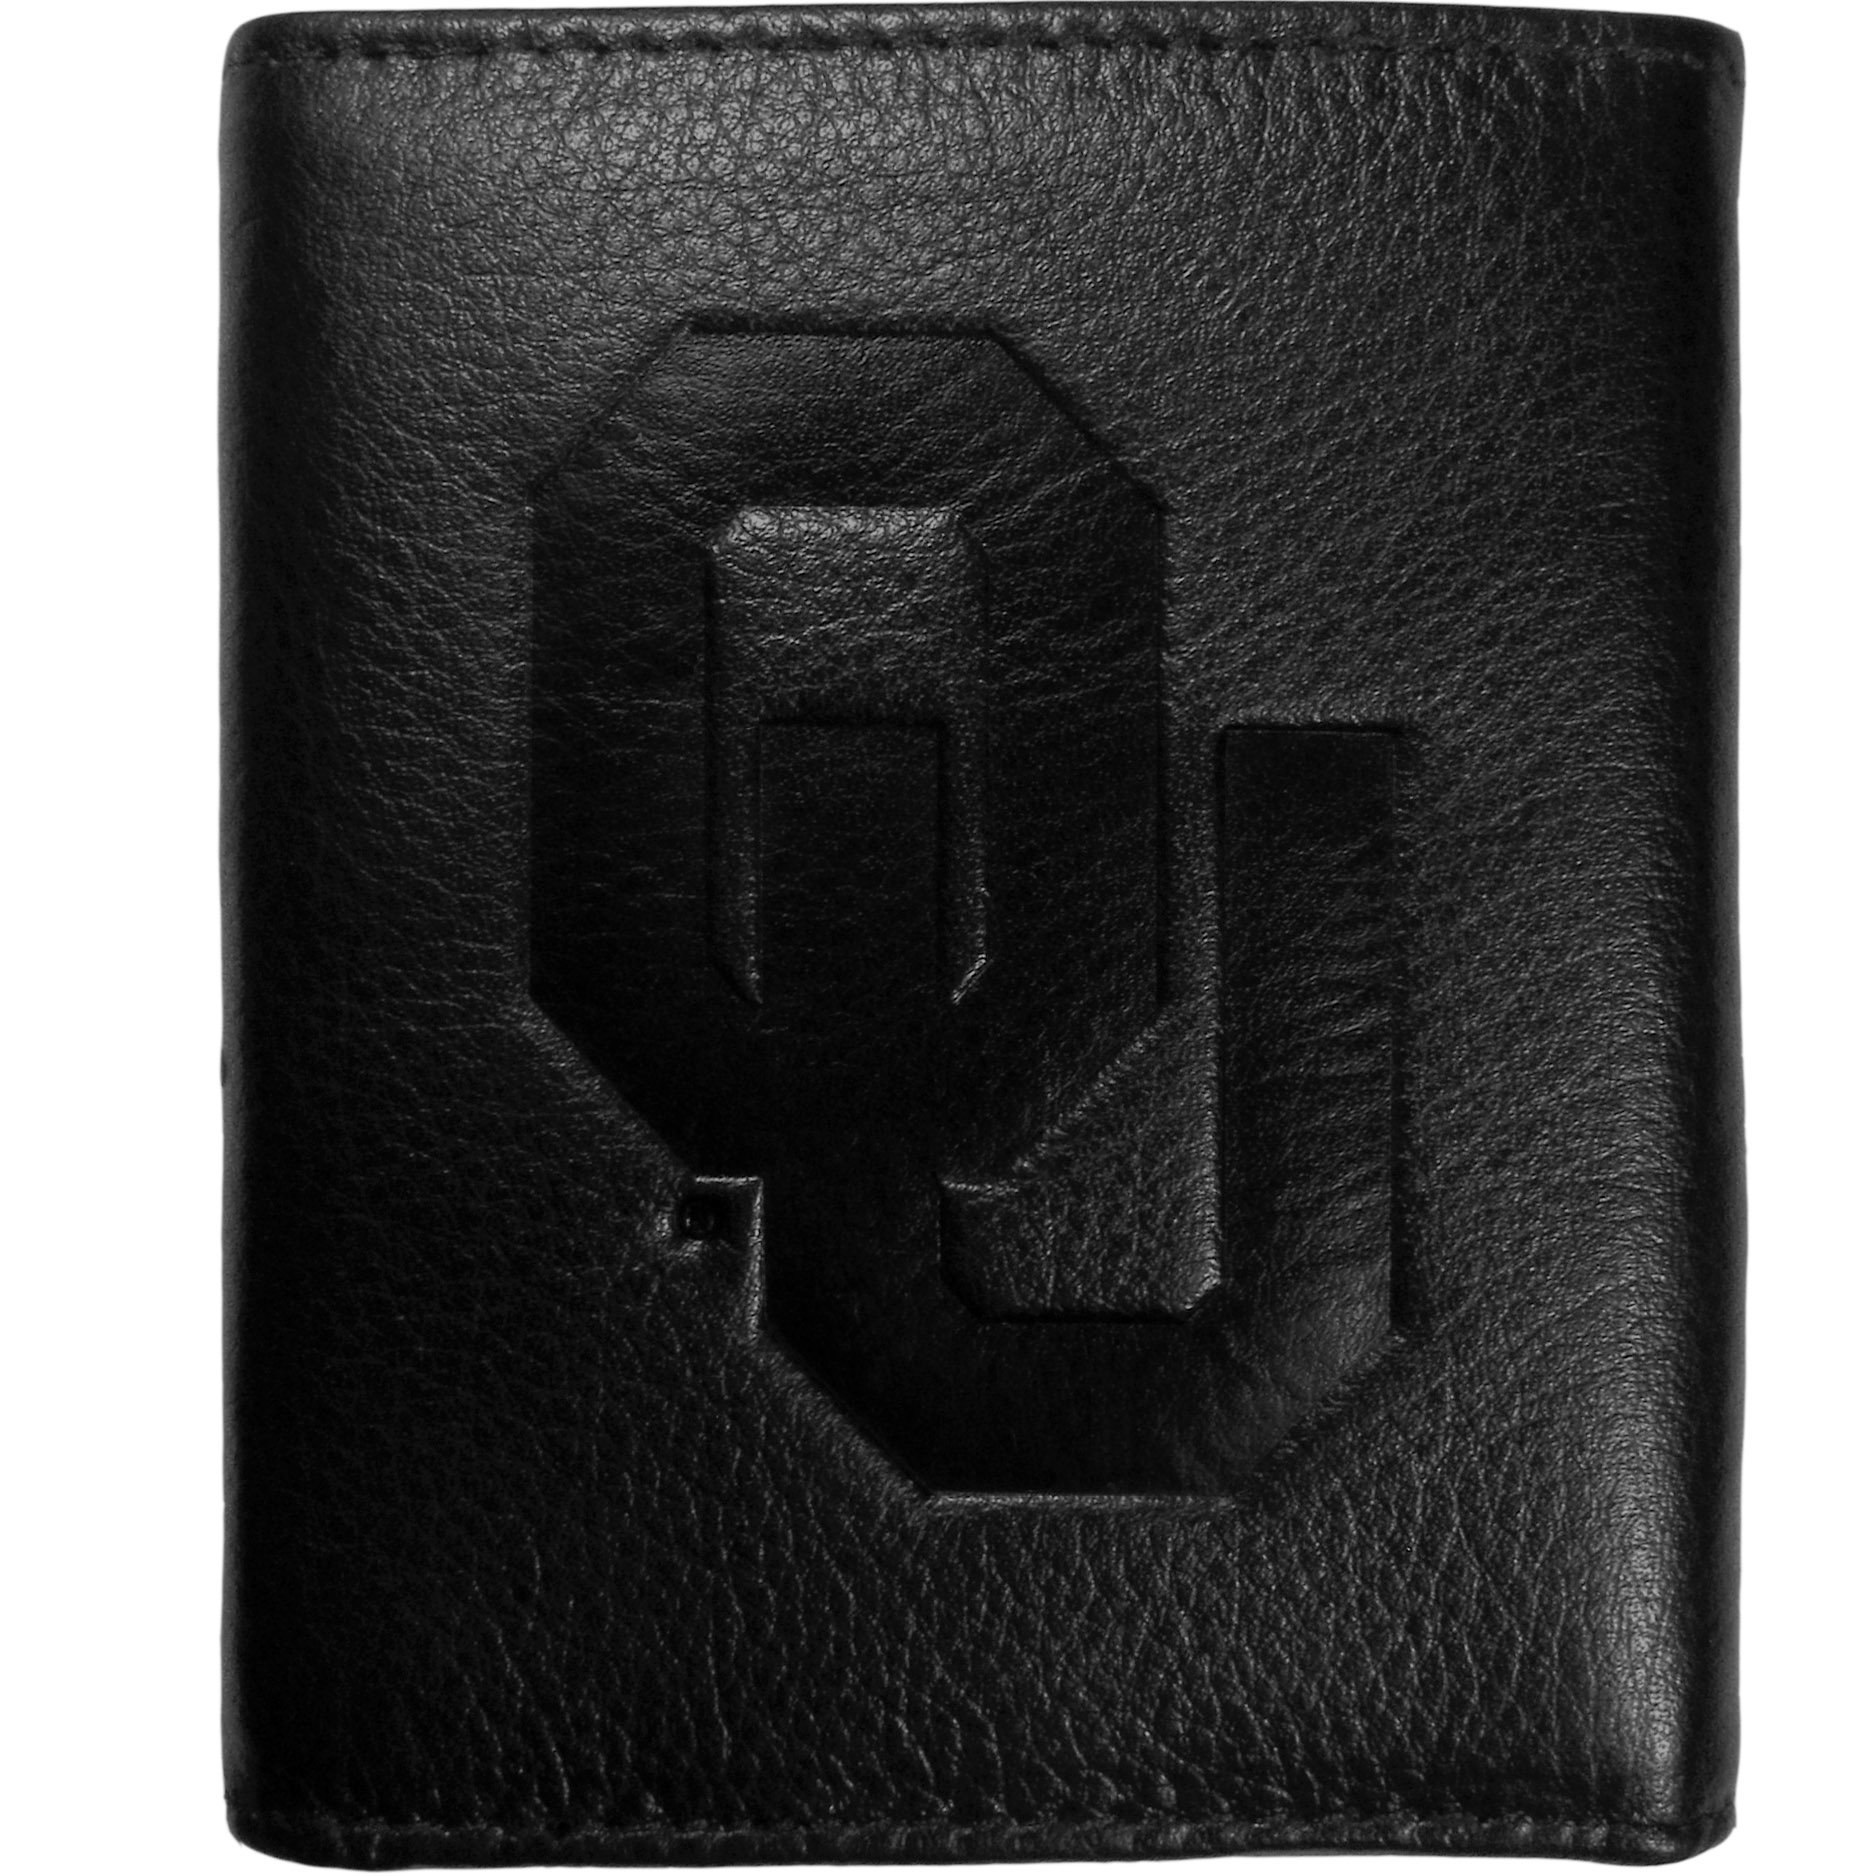 Oklahoma Sooners Embossed Leather Tri-fold Wallet - This stylish leather wallet is made of high quality leather with a supple feel and classic look. The front of the tri-fold style wallet has a deeply embossed Oklahoma Sooners logo. The billfold is packed with features that will allow to keep organized, lots of credit card slots, windowed ID slot, large pockets for bills and a removable sleeve with extra slots for even more storage. This is a must-have men's fashion accessory that would make any fan very proud to own.